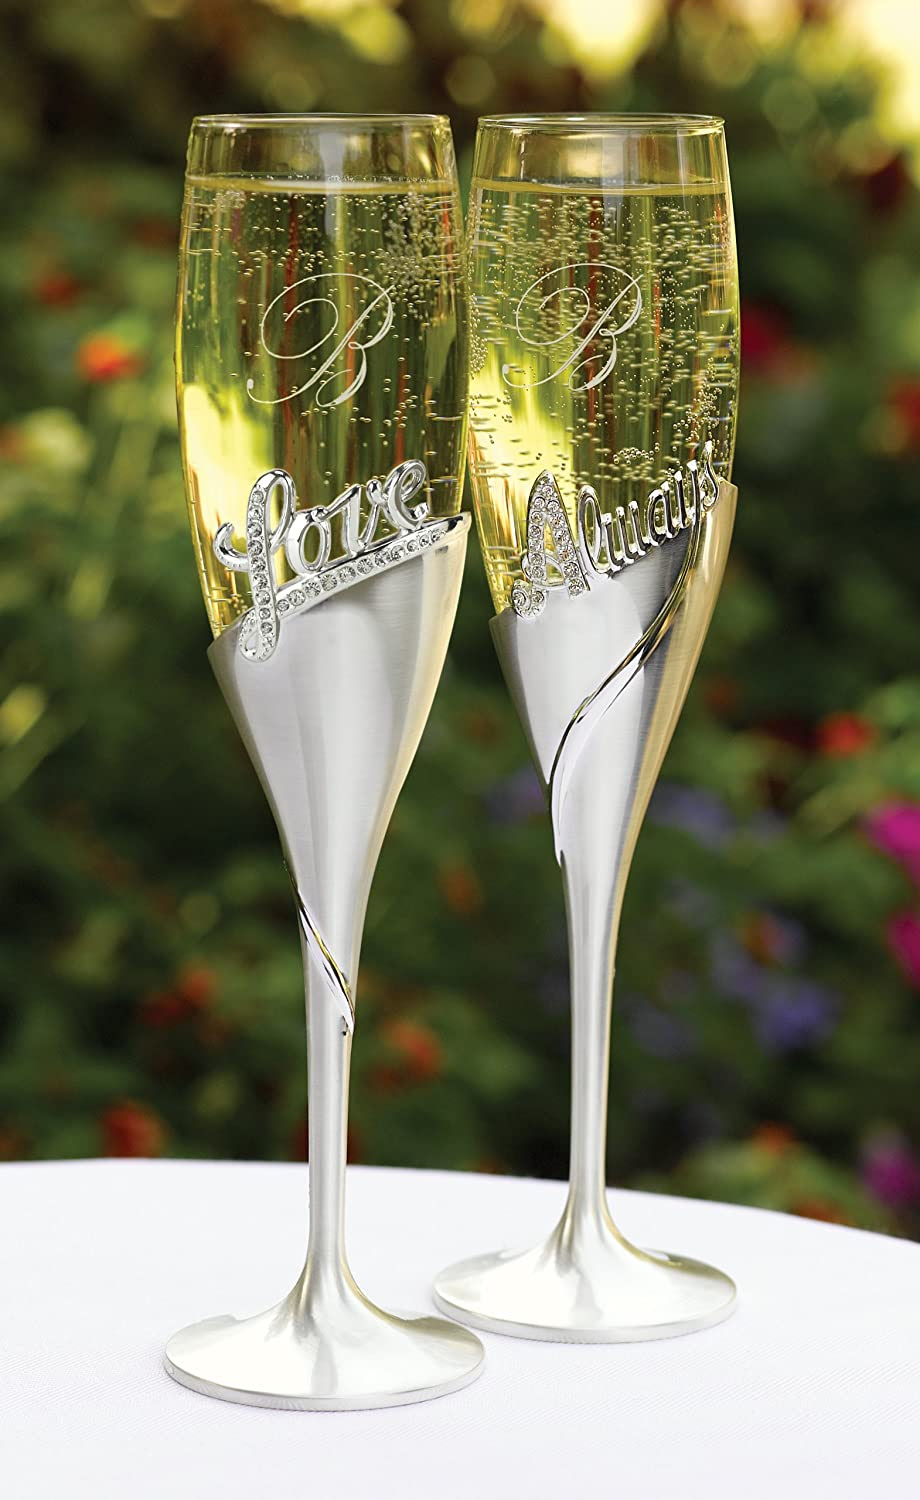 FLUTE GLASSES ARE GREAT FOR ANY CELEBRATION